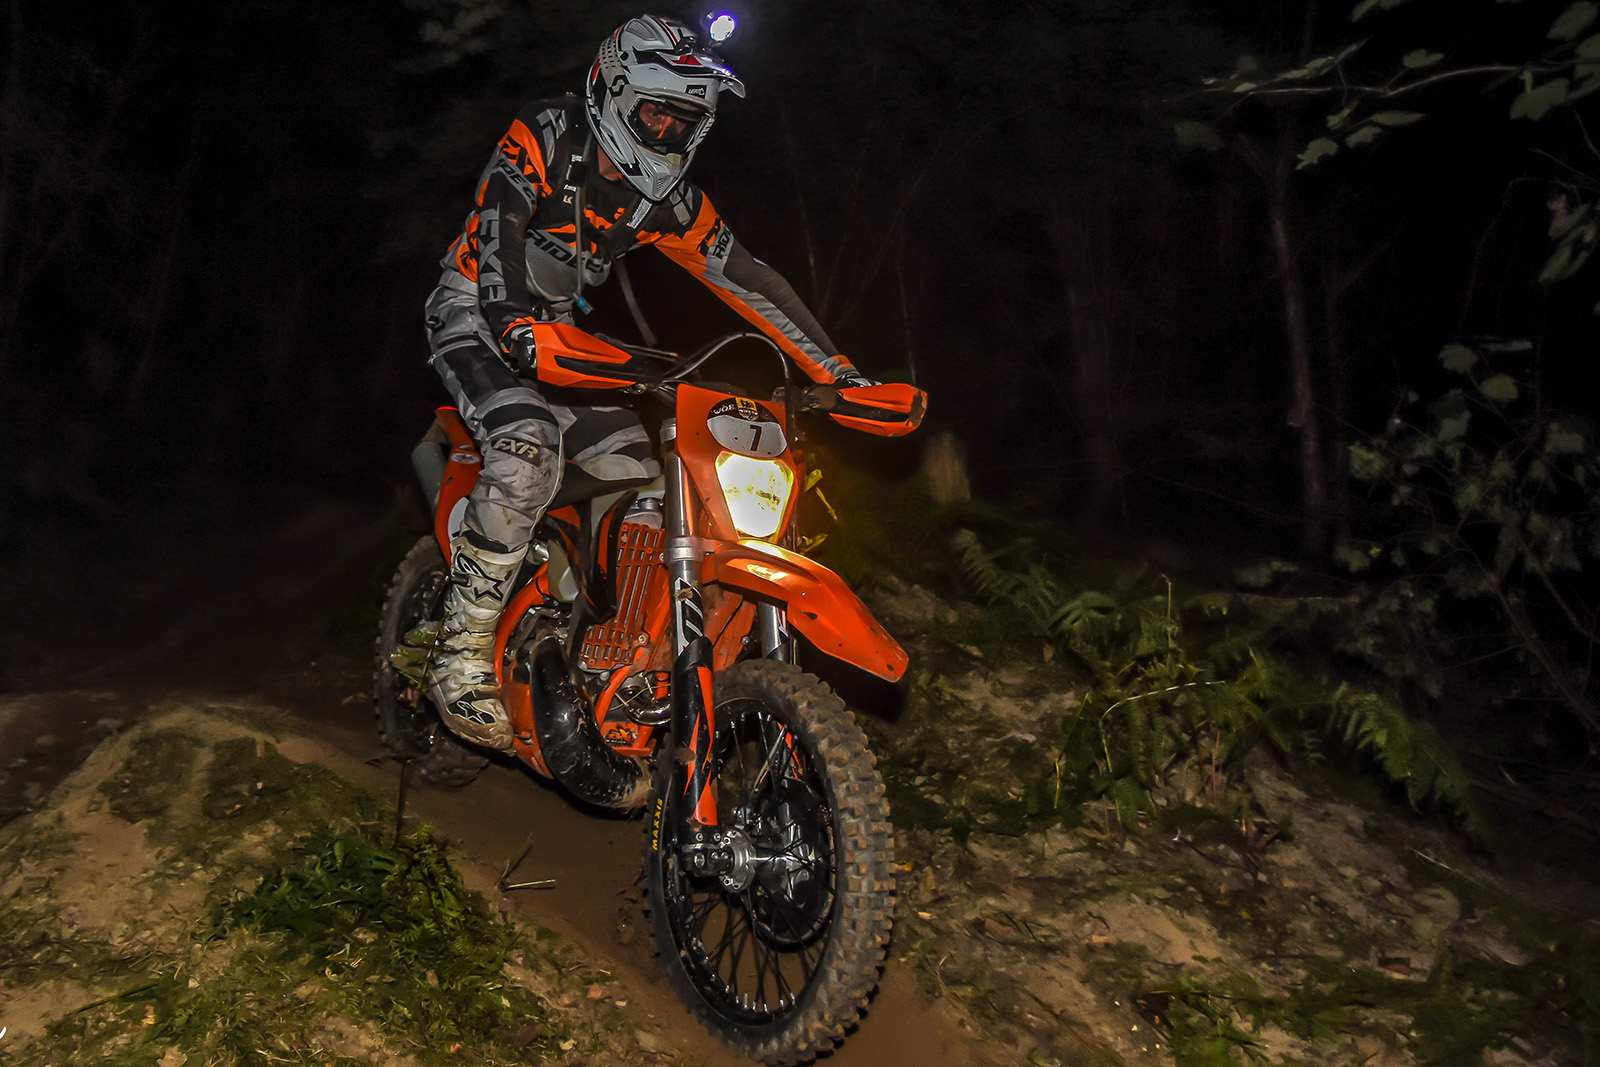 KTM 300 EXC TPI Test Mule: Night racing rocks!